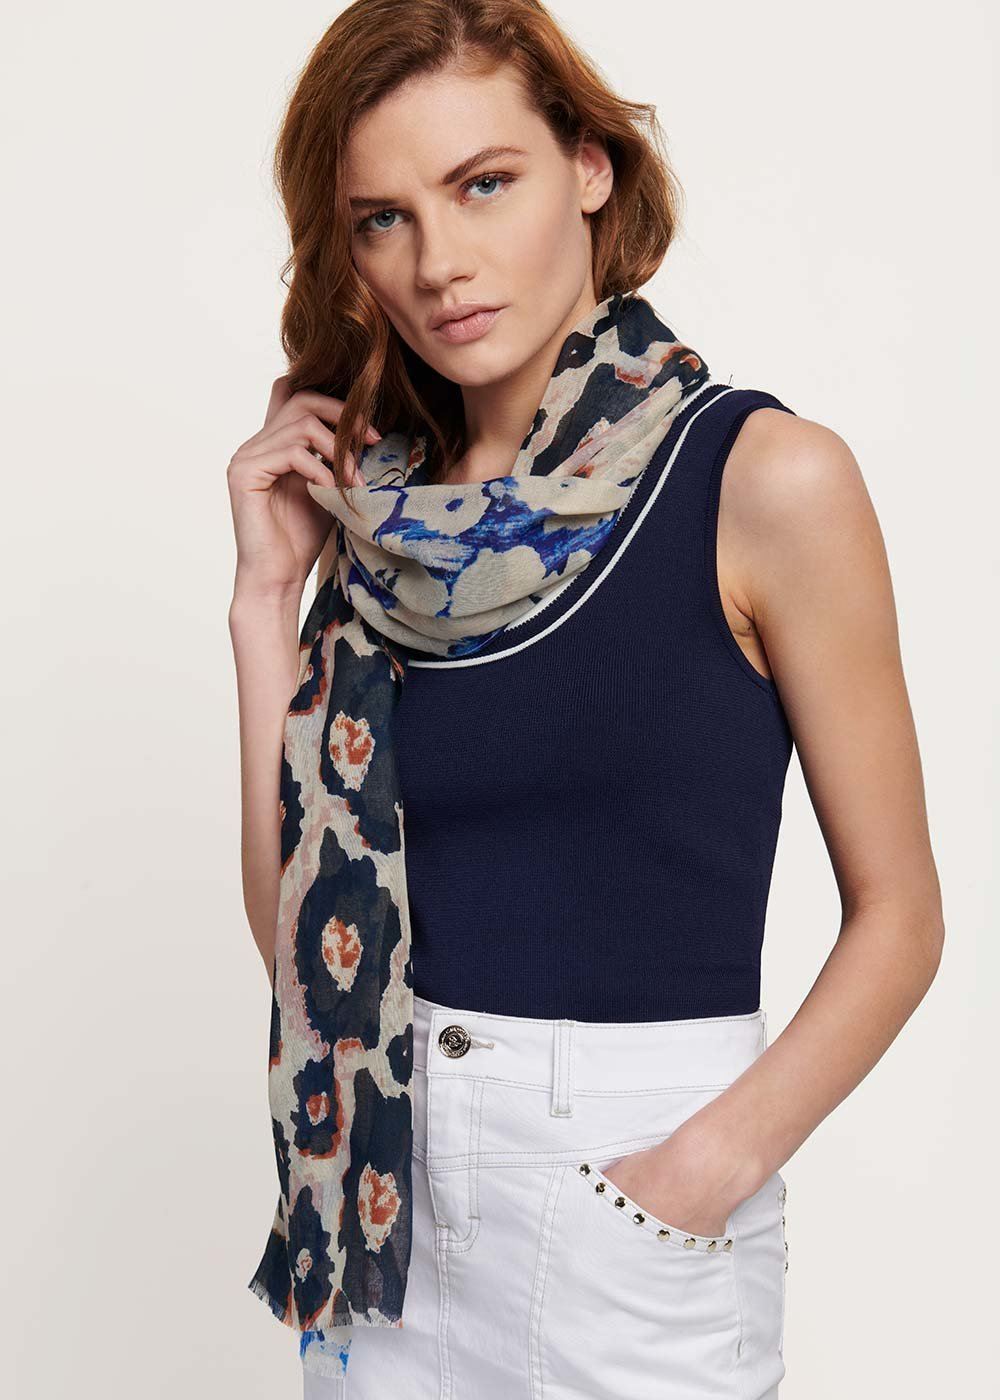 Silv scarf with double - patterned print - Zenzero Animalier - Woman